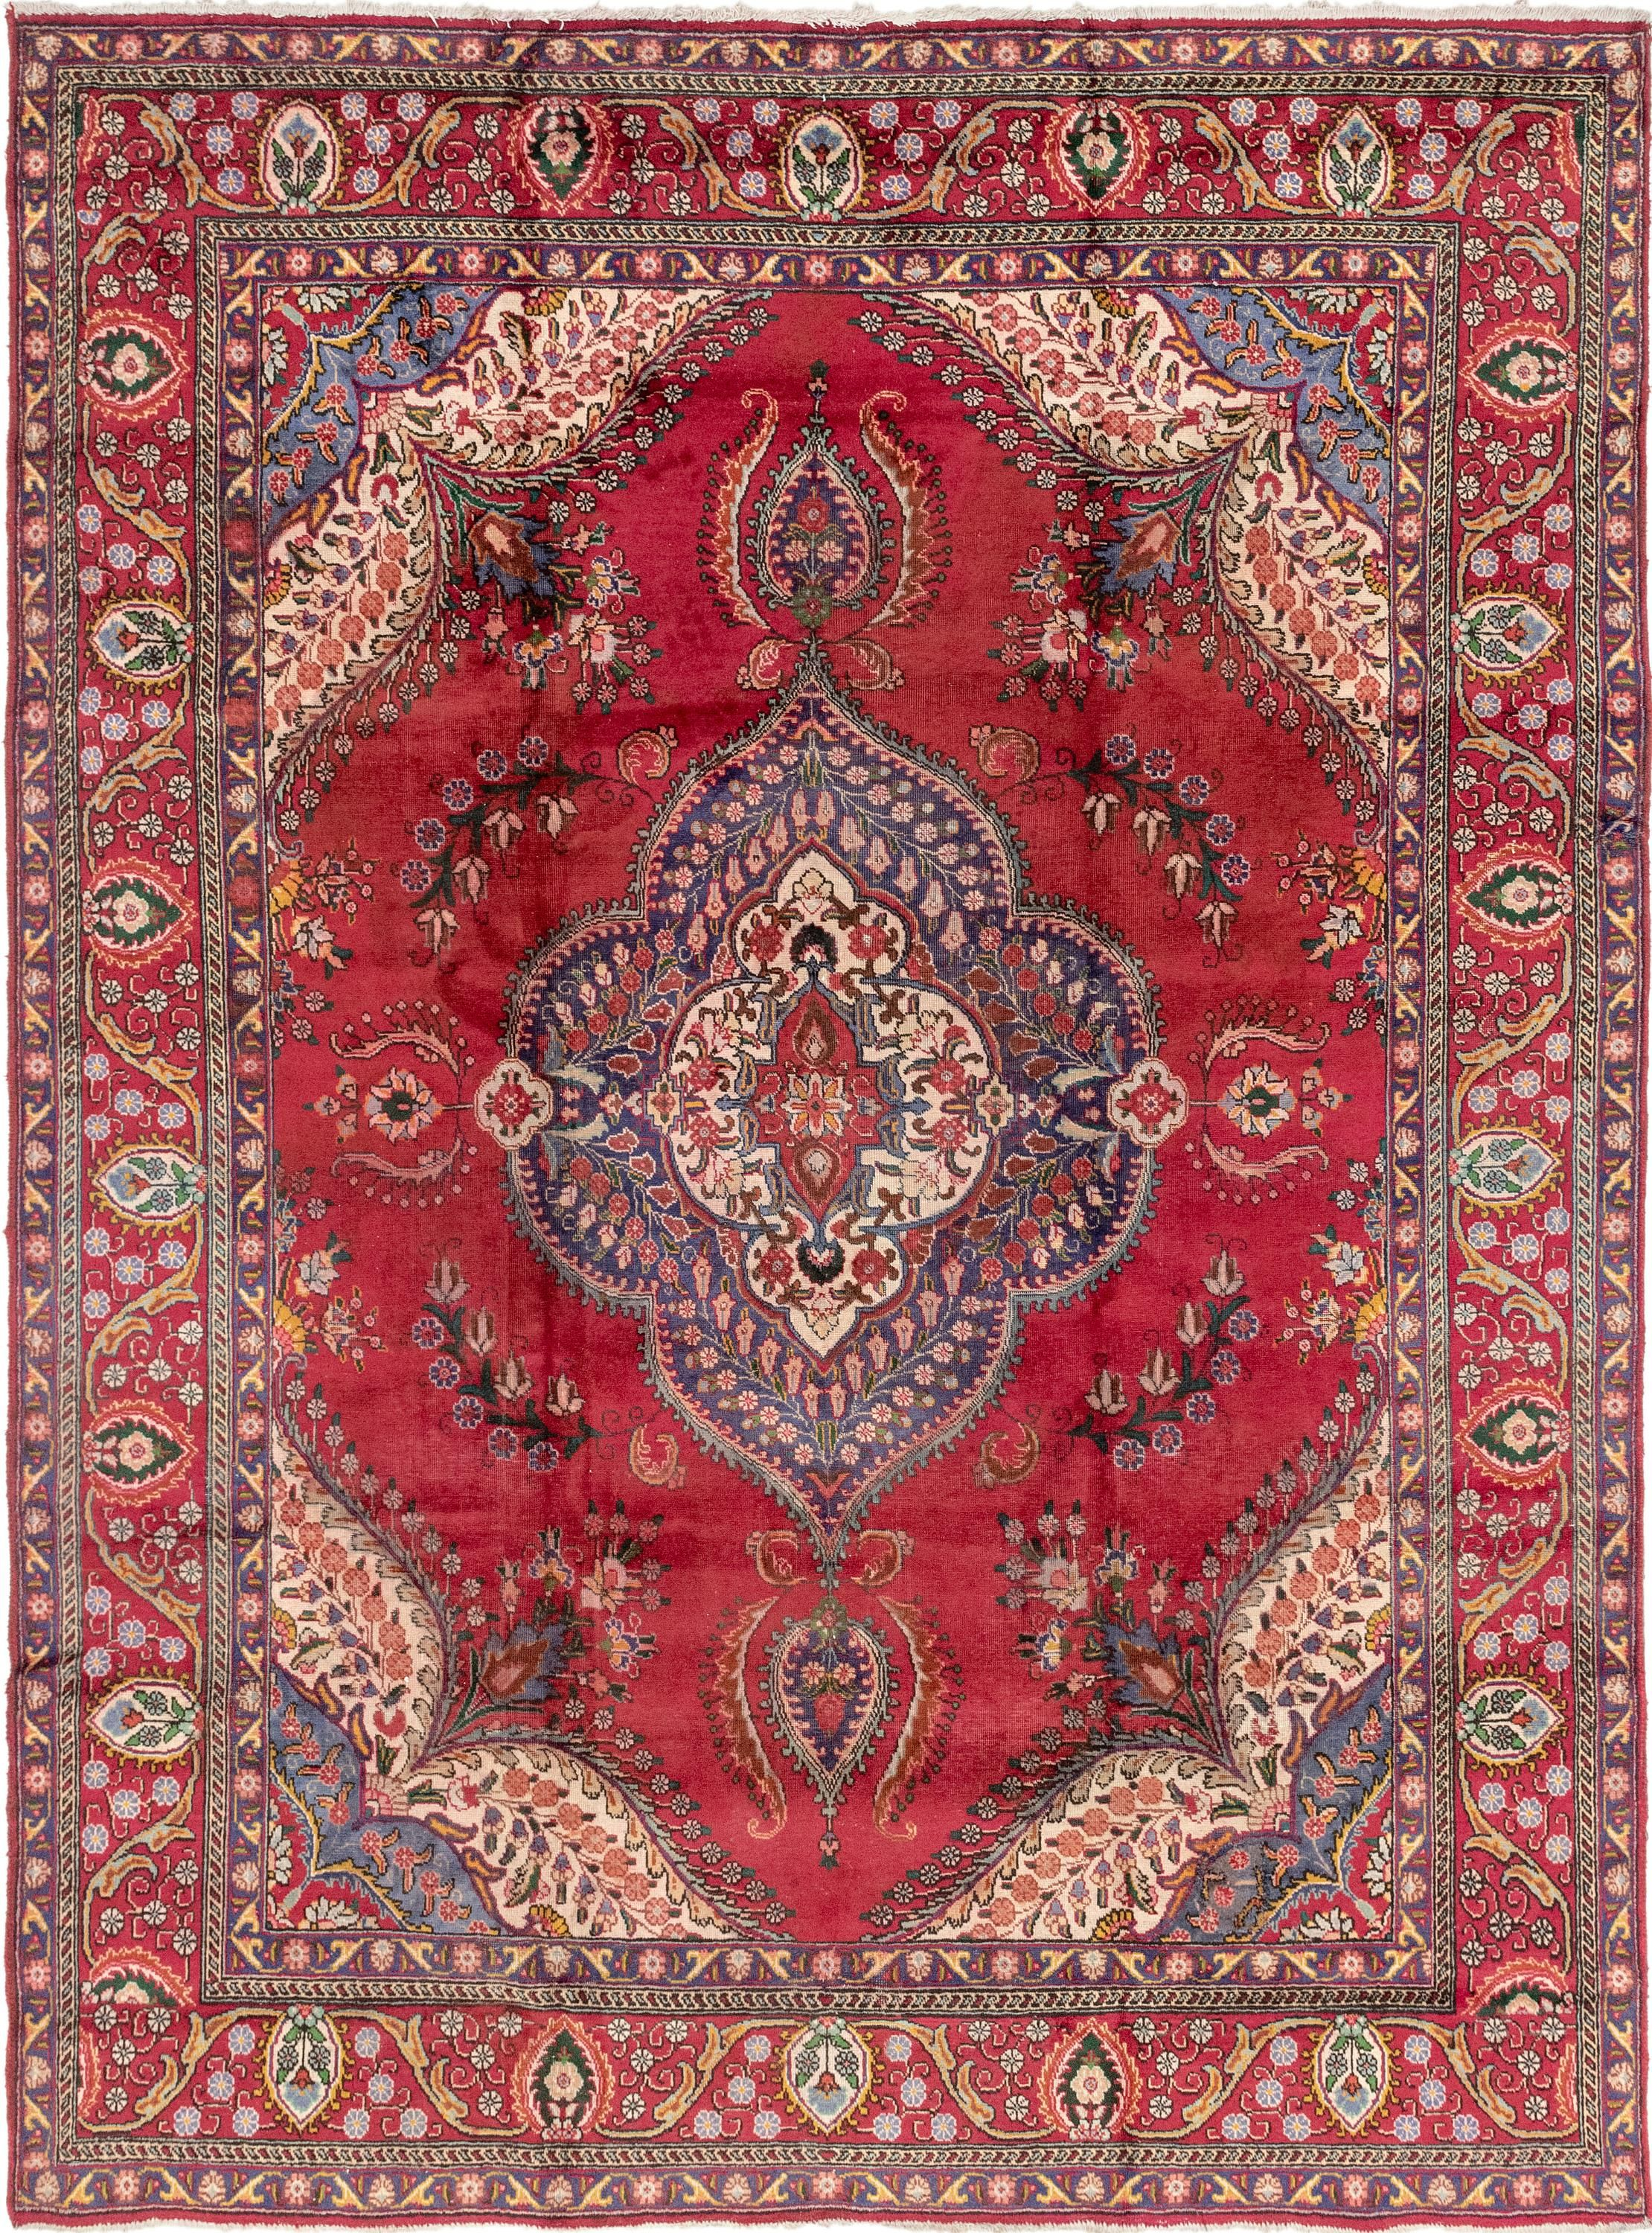 Red 9 7 X 13 3 Tabriz Persian Rug Affiliate Red Tabriz Rug Persian Sponsored Persian Rug Antique Persian Rug Rugs